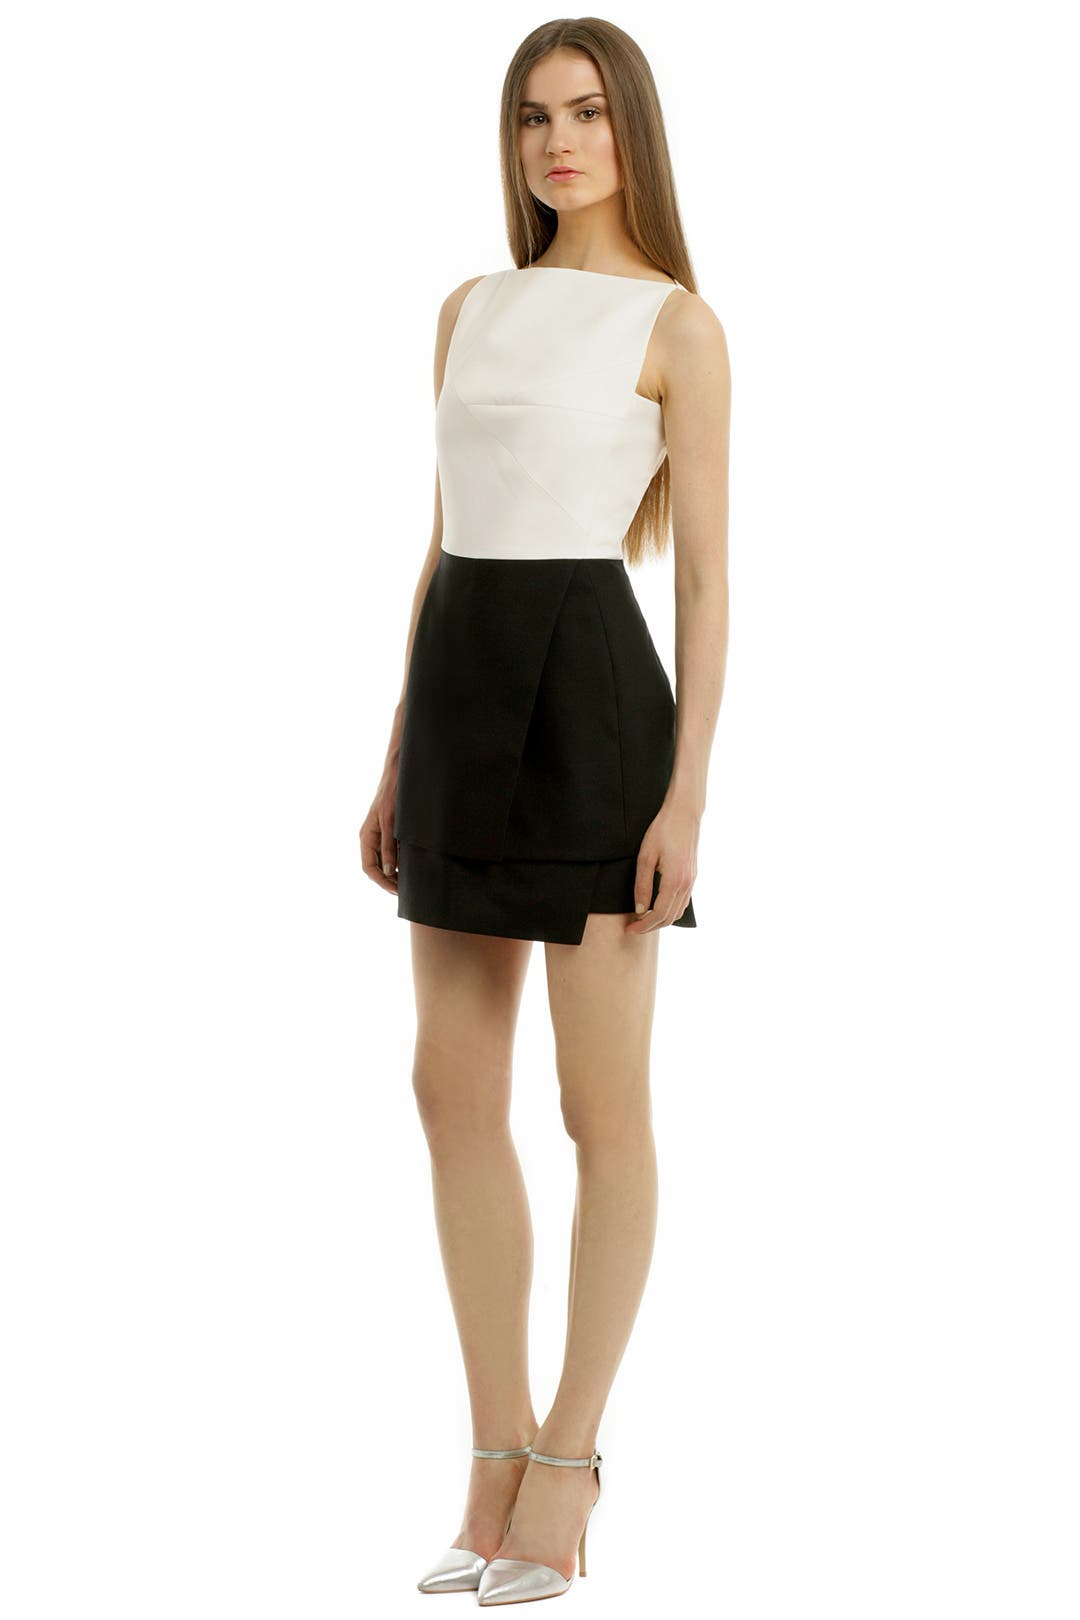 Sheer Simplicity Sheath by Narciso Rodriguez